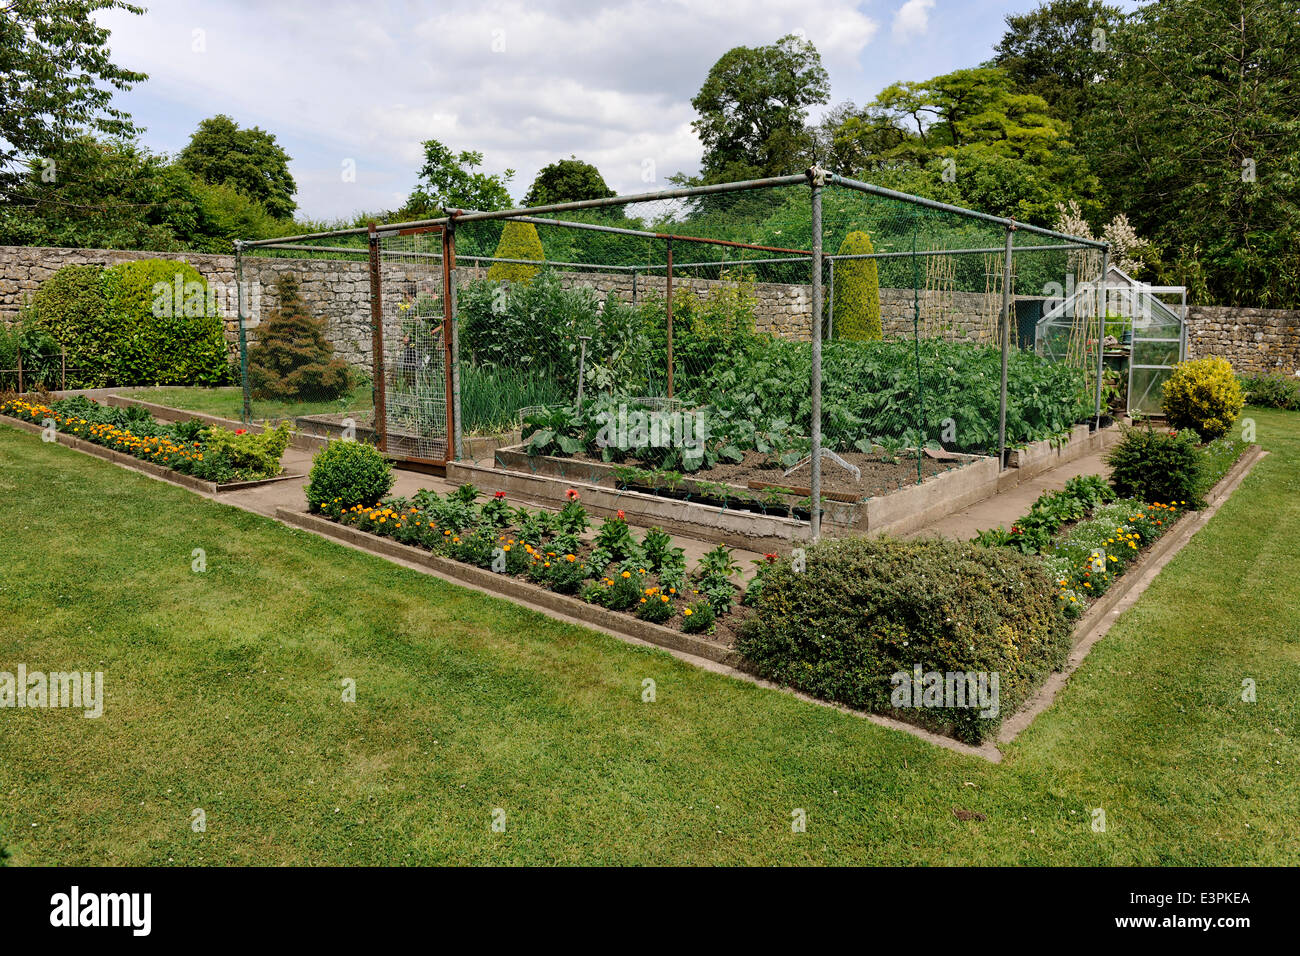 Fenced Off Vegetable Plot, in a garden in Great Elm, near Mells, Somerset. - Stock Image